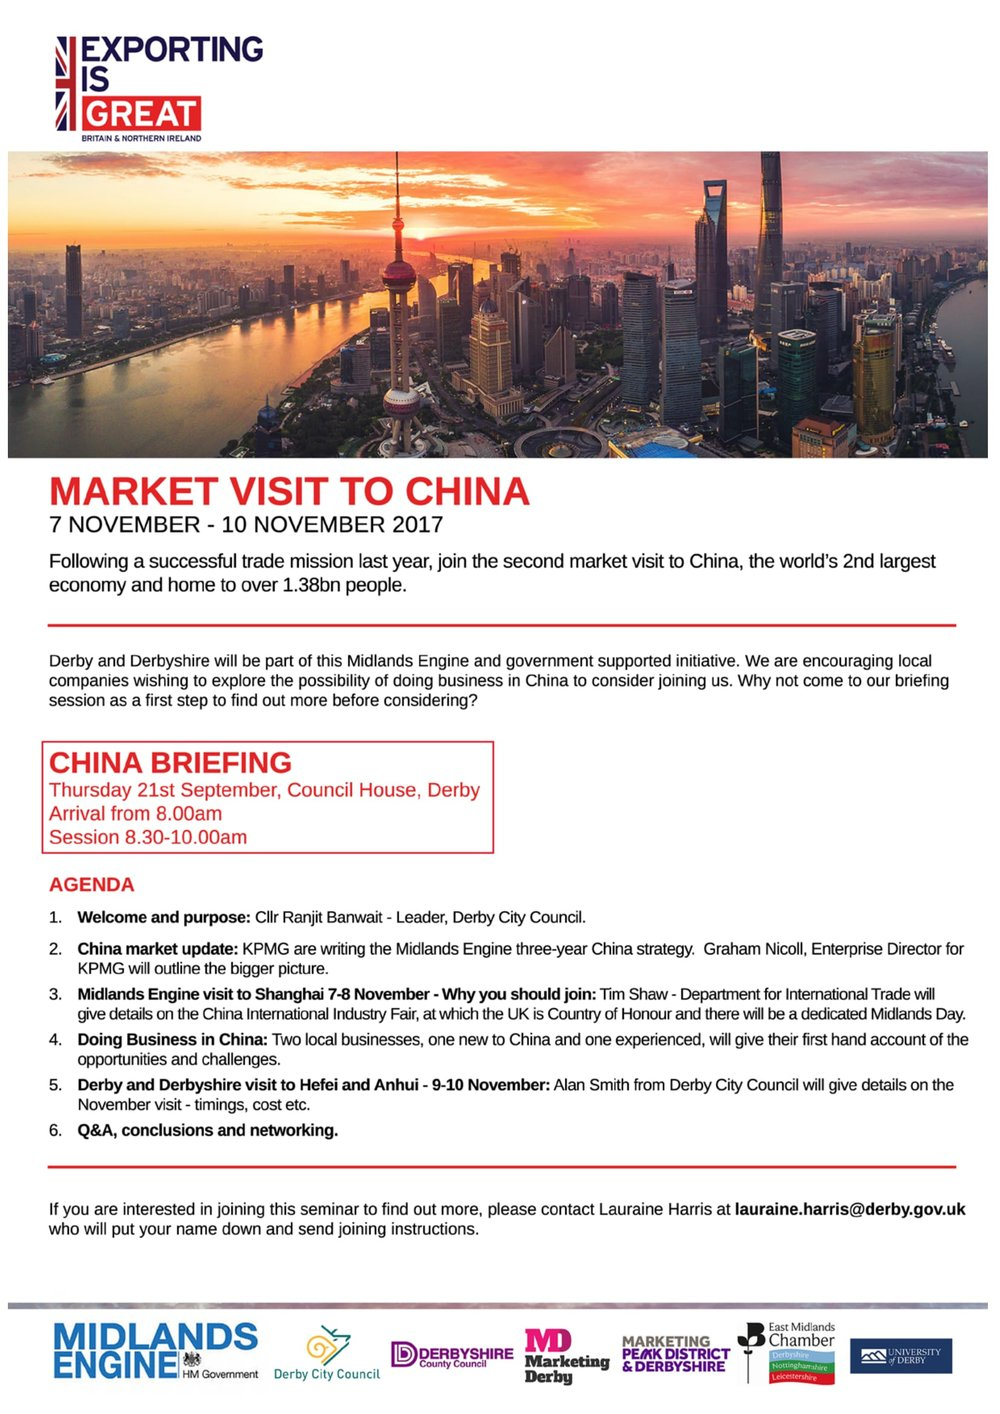 Chinese Midlands Engine Briefing Invitation-1.jpg